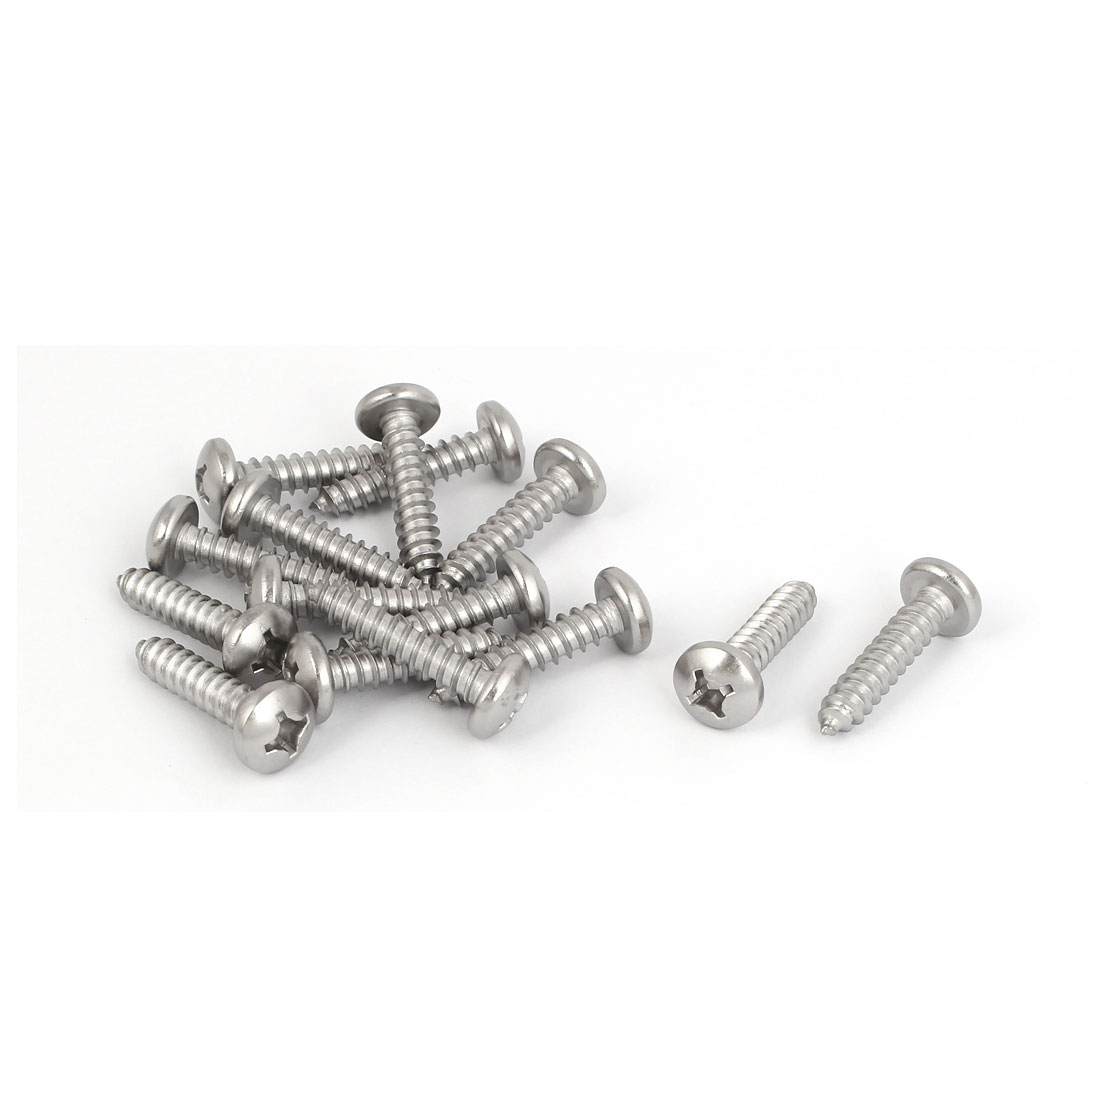 M5.5x25mm 316 Stainless Steel Phillips Pan Round Head Self Tapping Screws 15pcs